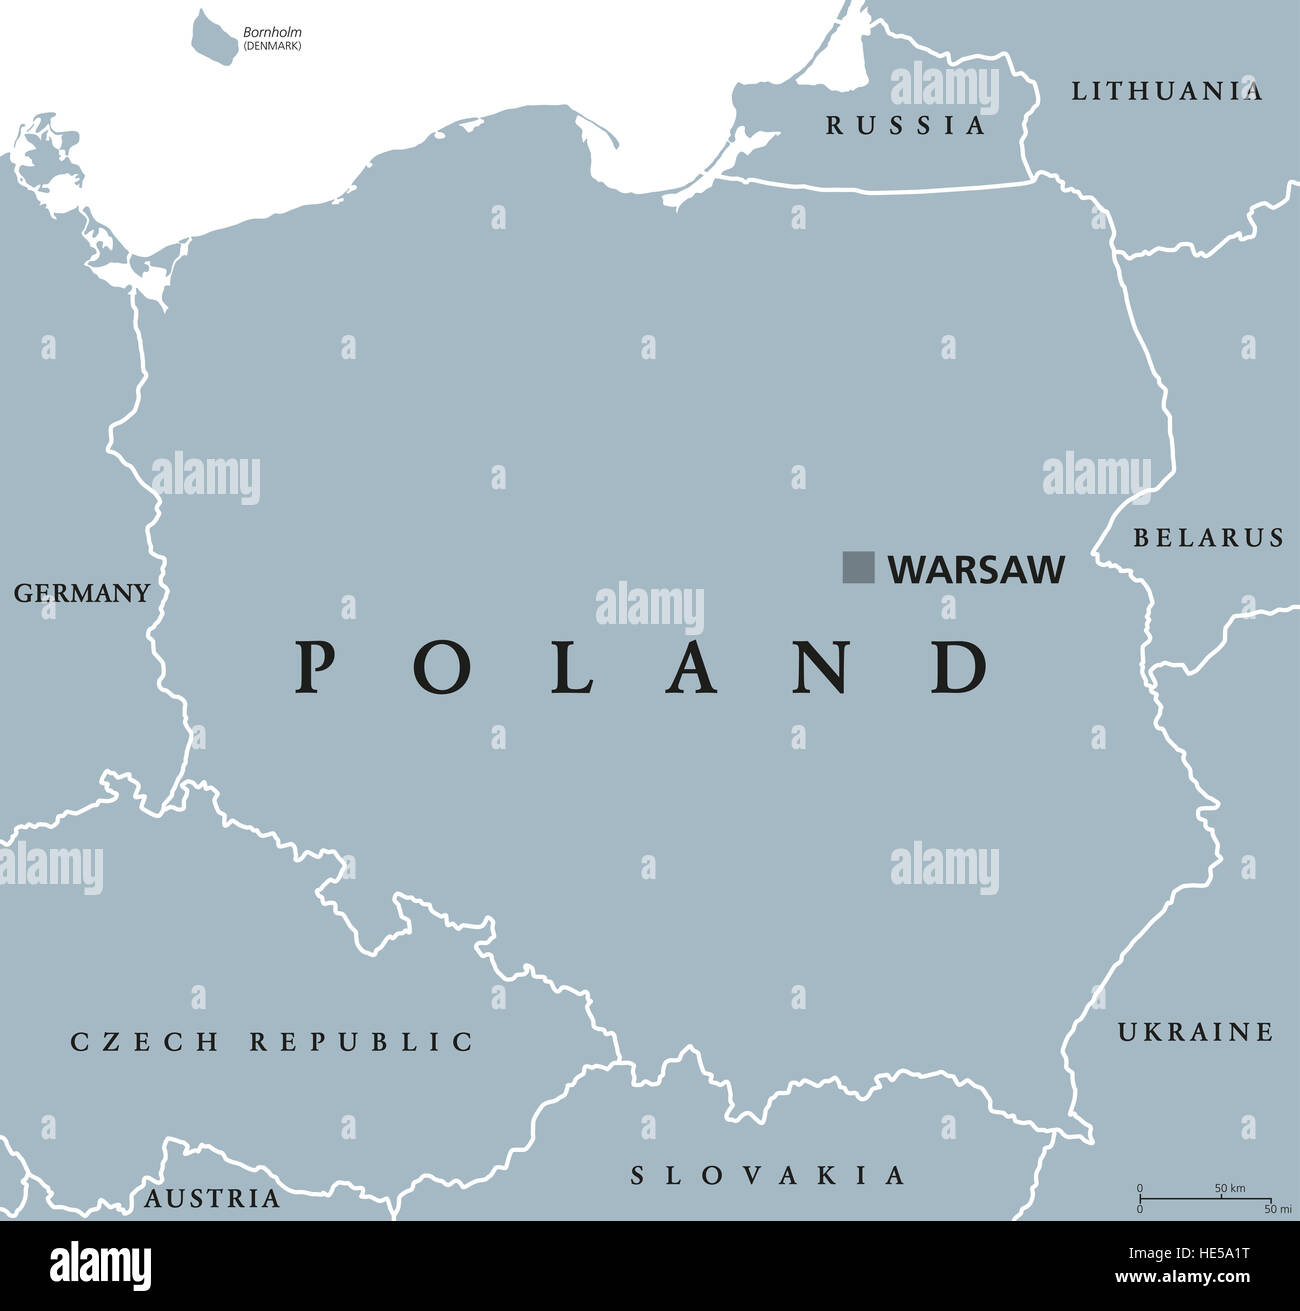 Poland Political Map With Capital Warsaw And Neighbor Countries - Location map ust